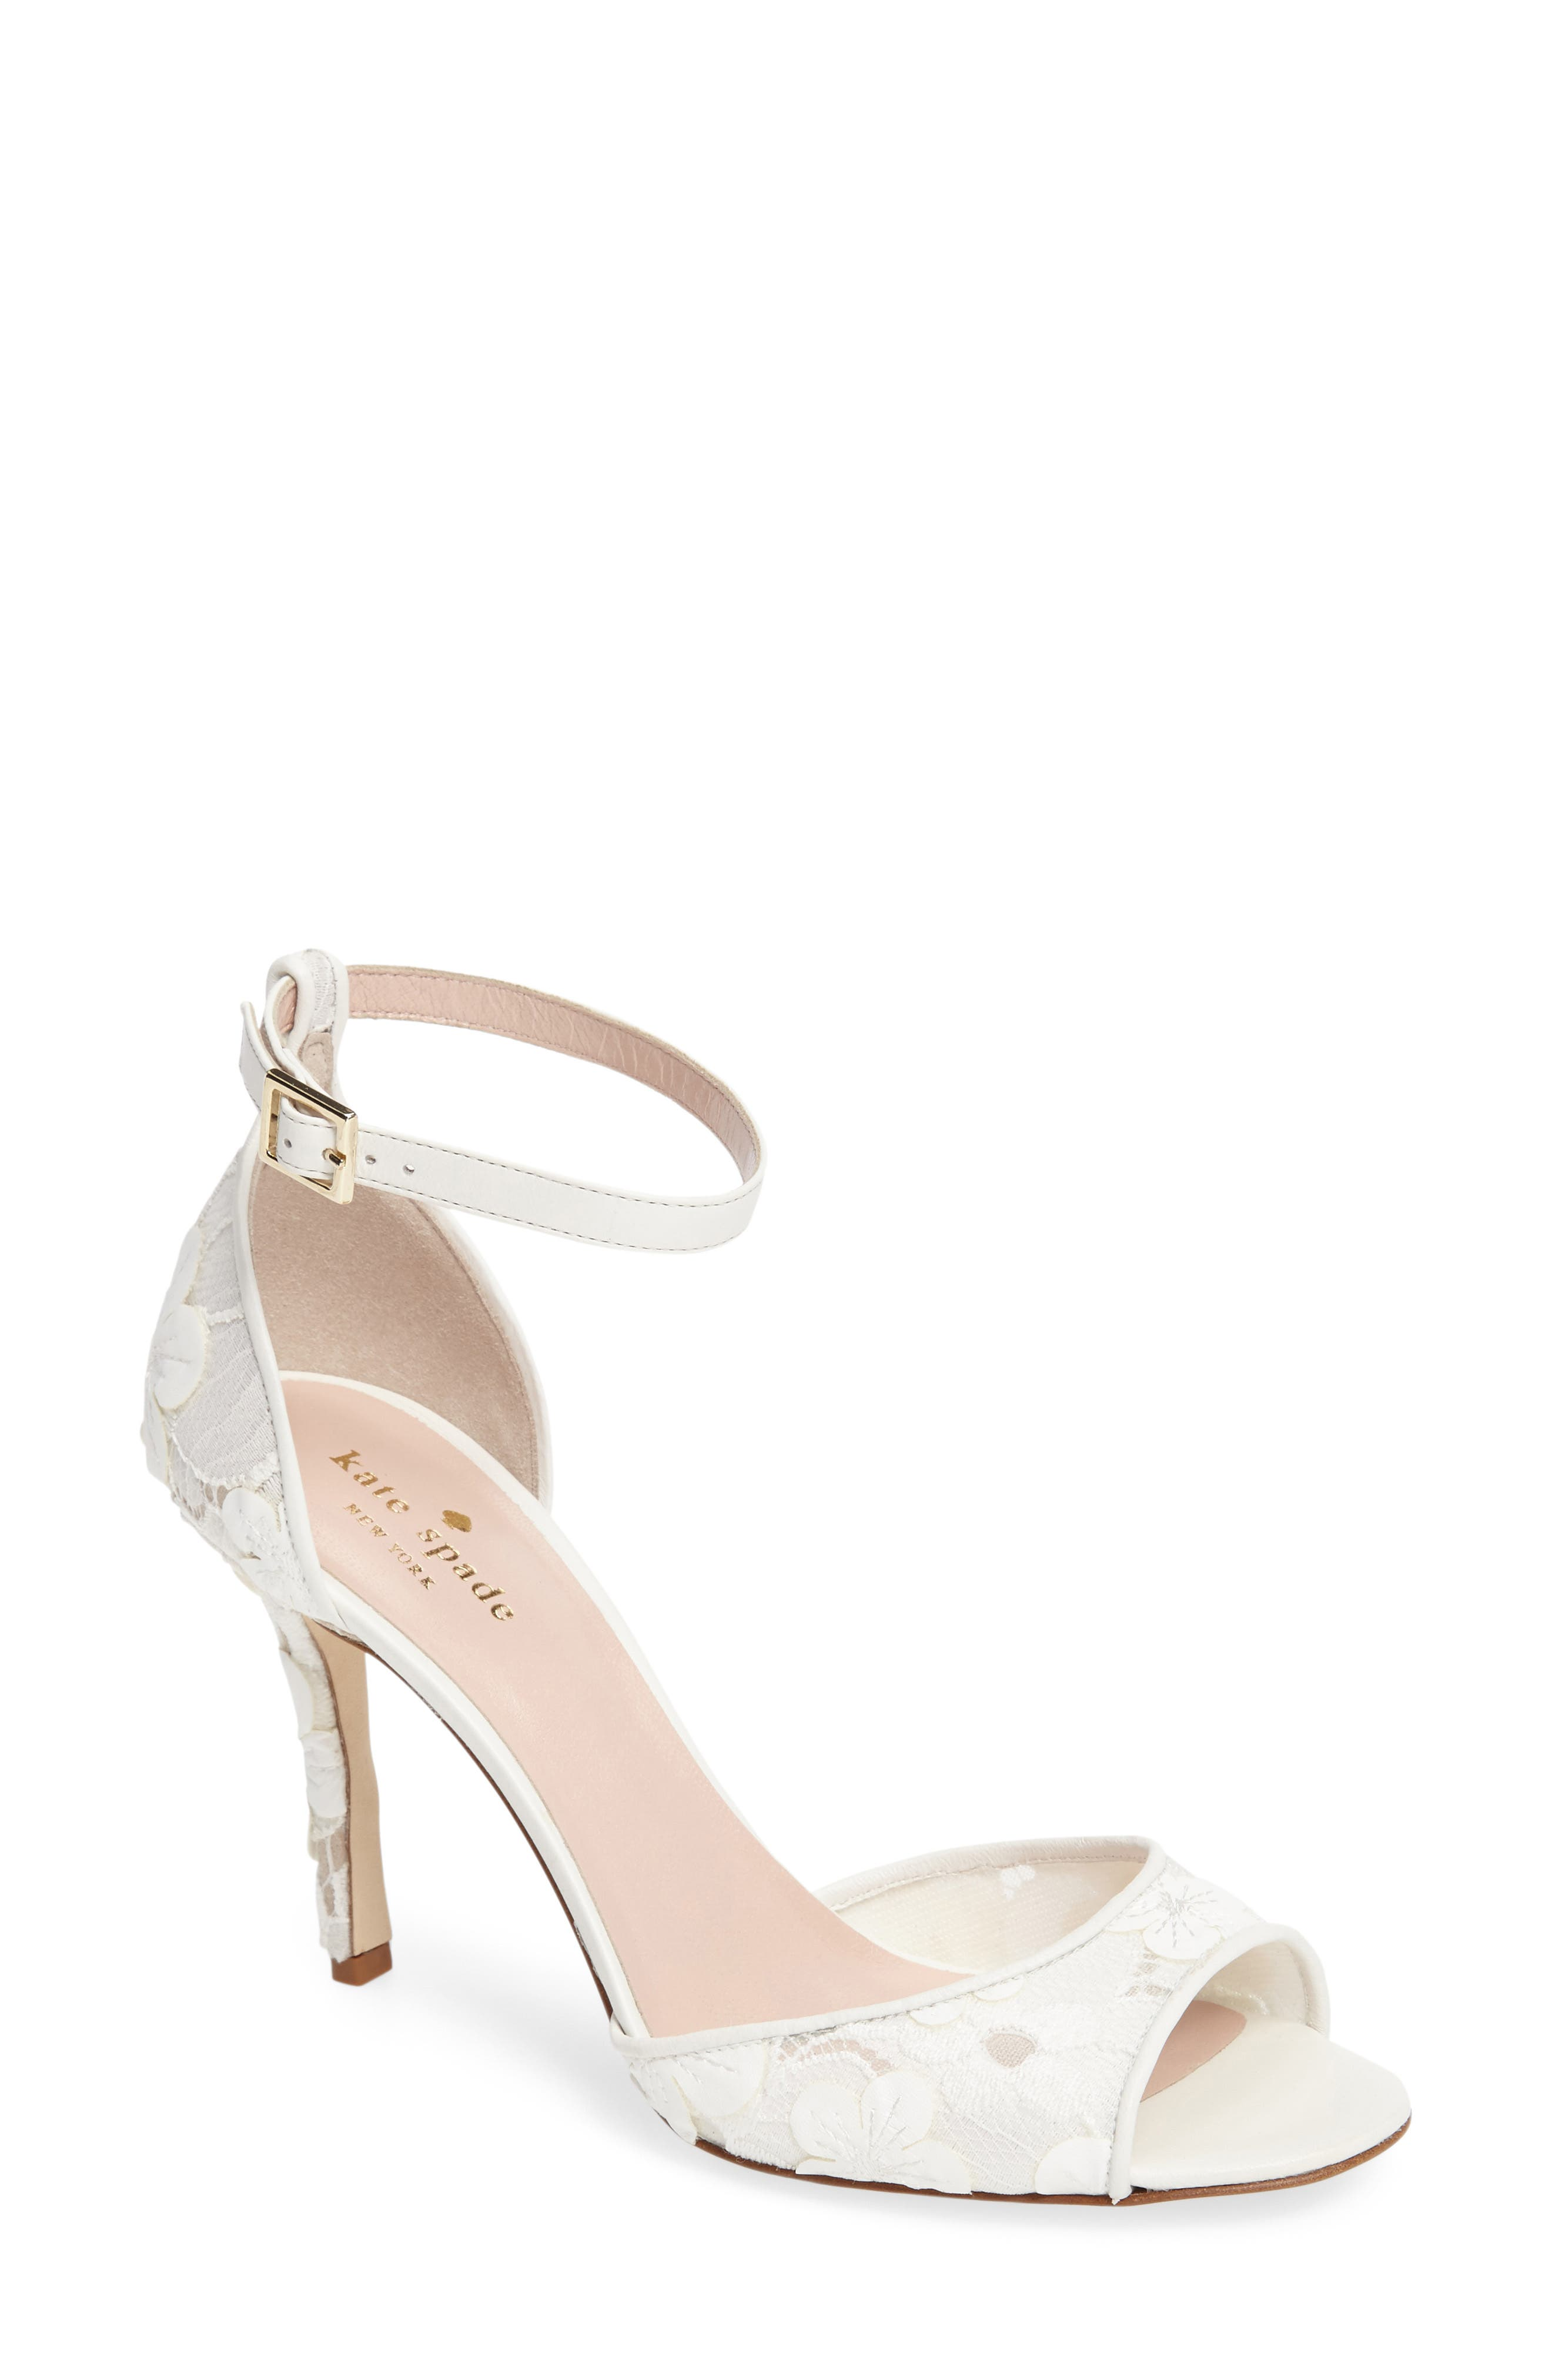 kate spade new york ideline floral lace sandal (Women)